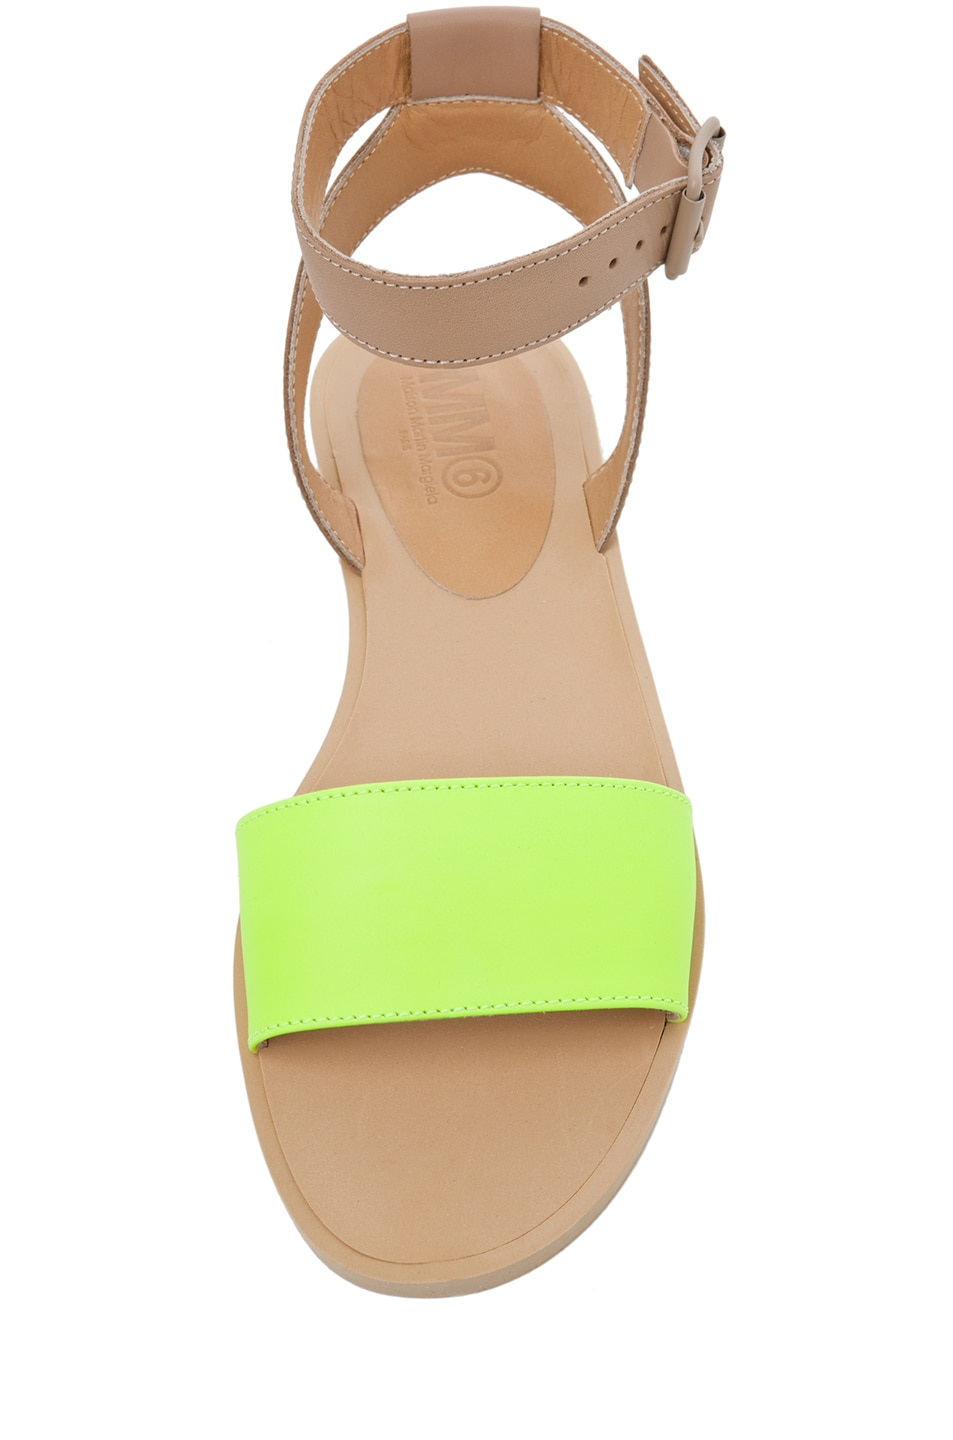 Image 4 of MM6 Maison Margiela Ankle Strap Sandal in Yellow & Beige